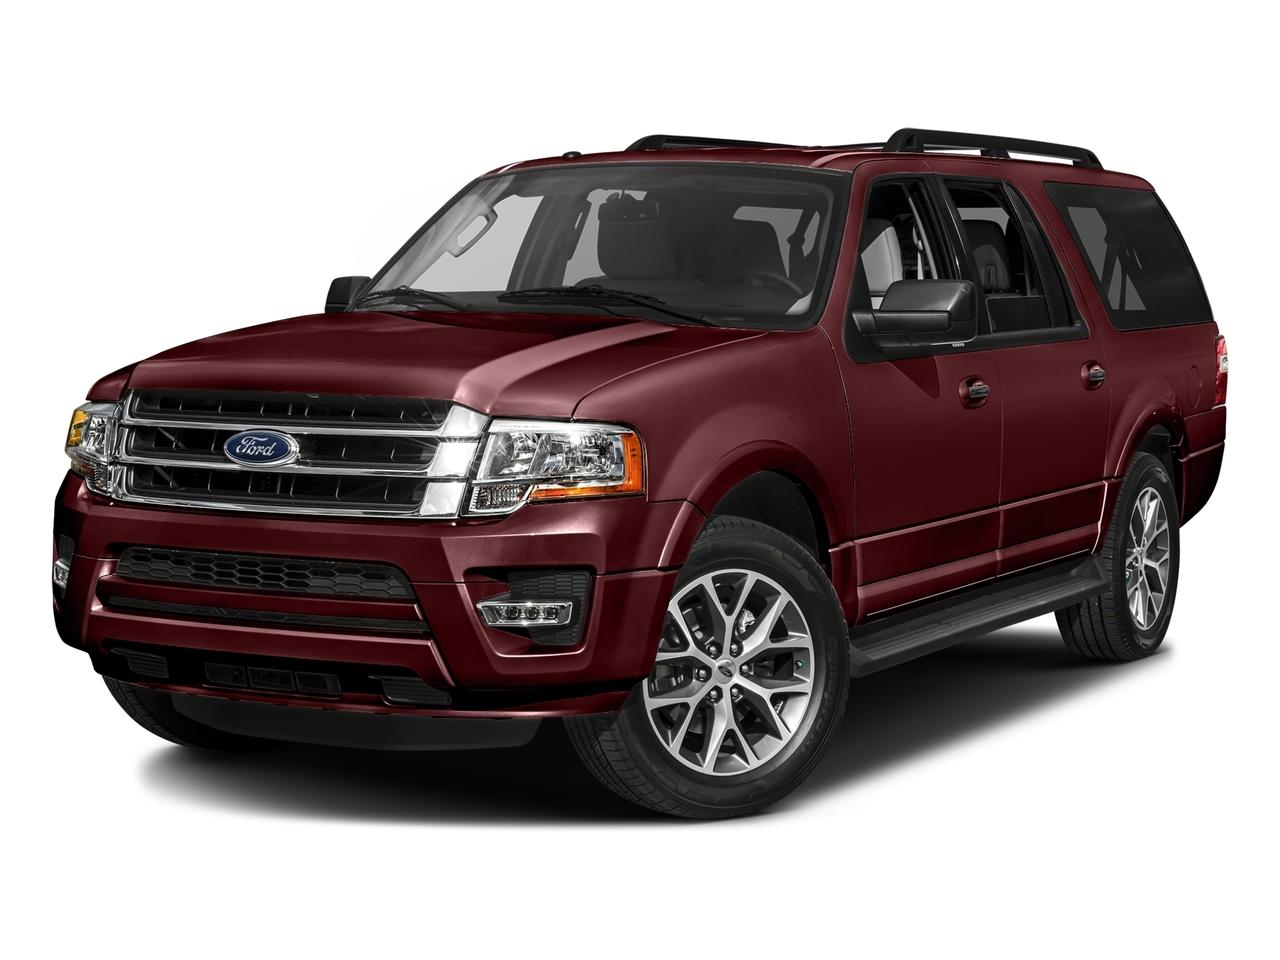 2017 Ford Expedition EL Vehicle Photo in Tucson, AZ 85705